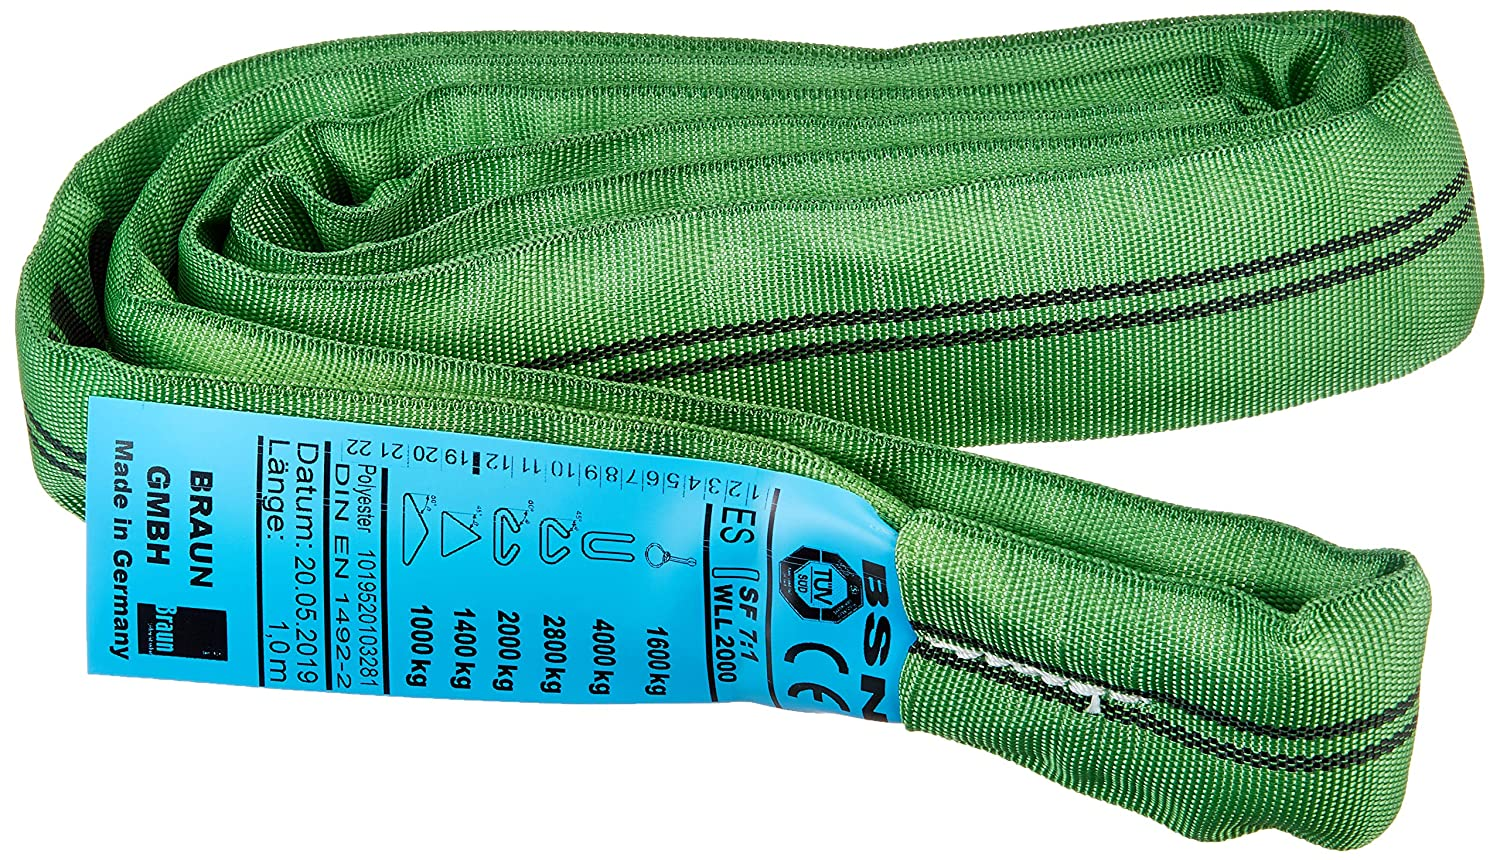 Braun 20011RS recupero strap loop carico 2000/kg 1/m continuo con nucleo in poliestere verde